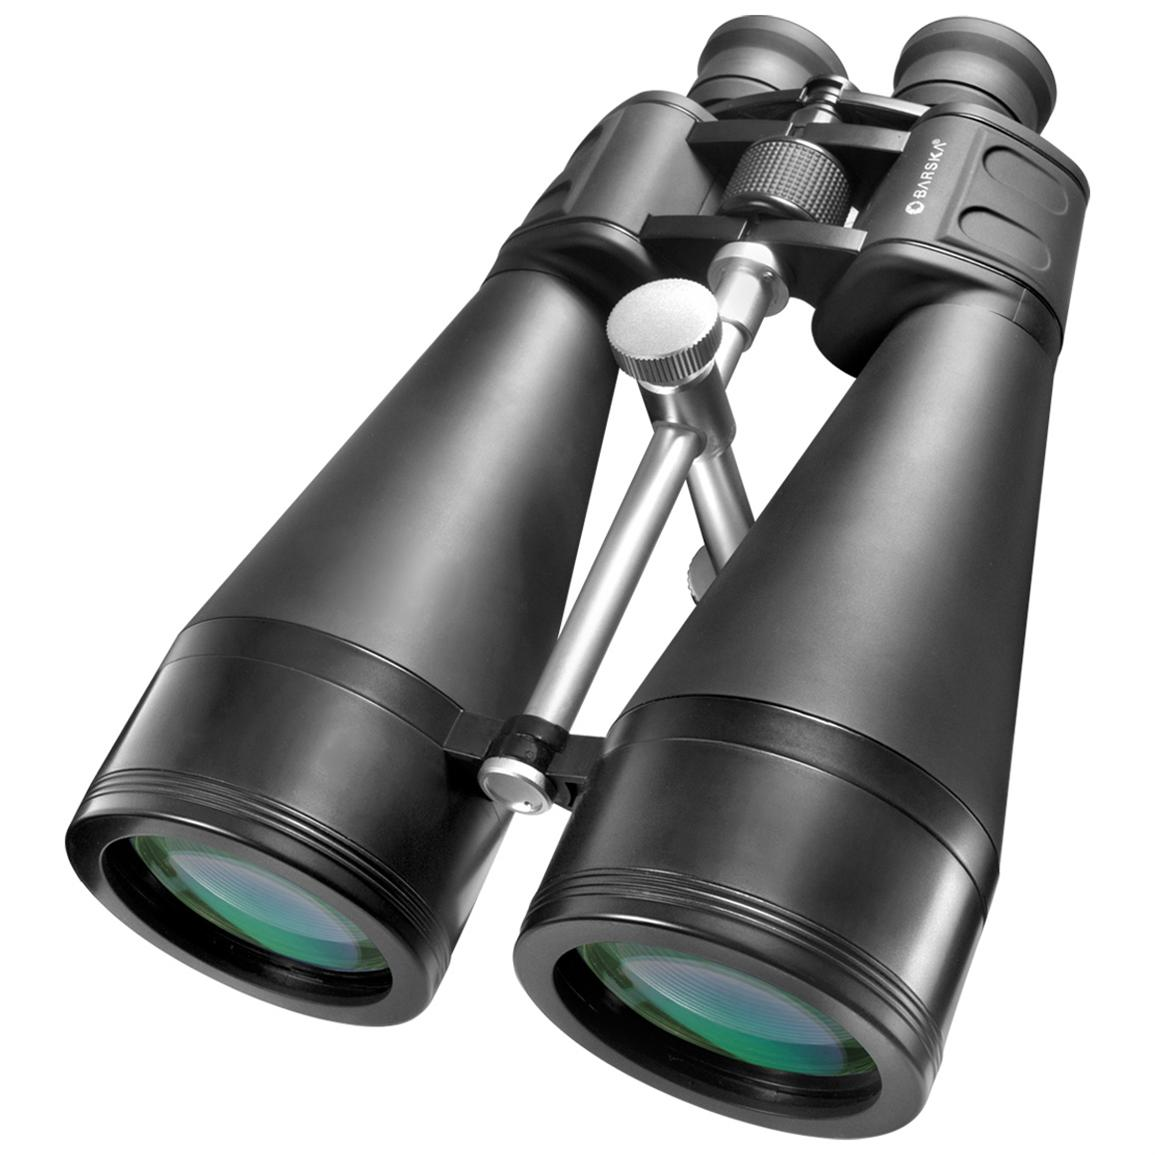 Barska® 20x80mm X-Trail Binoculars with Tripod Adaptor